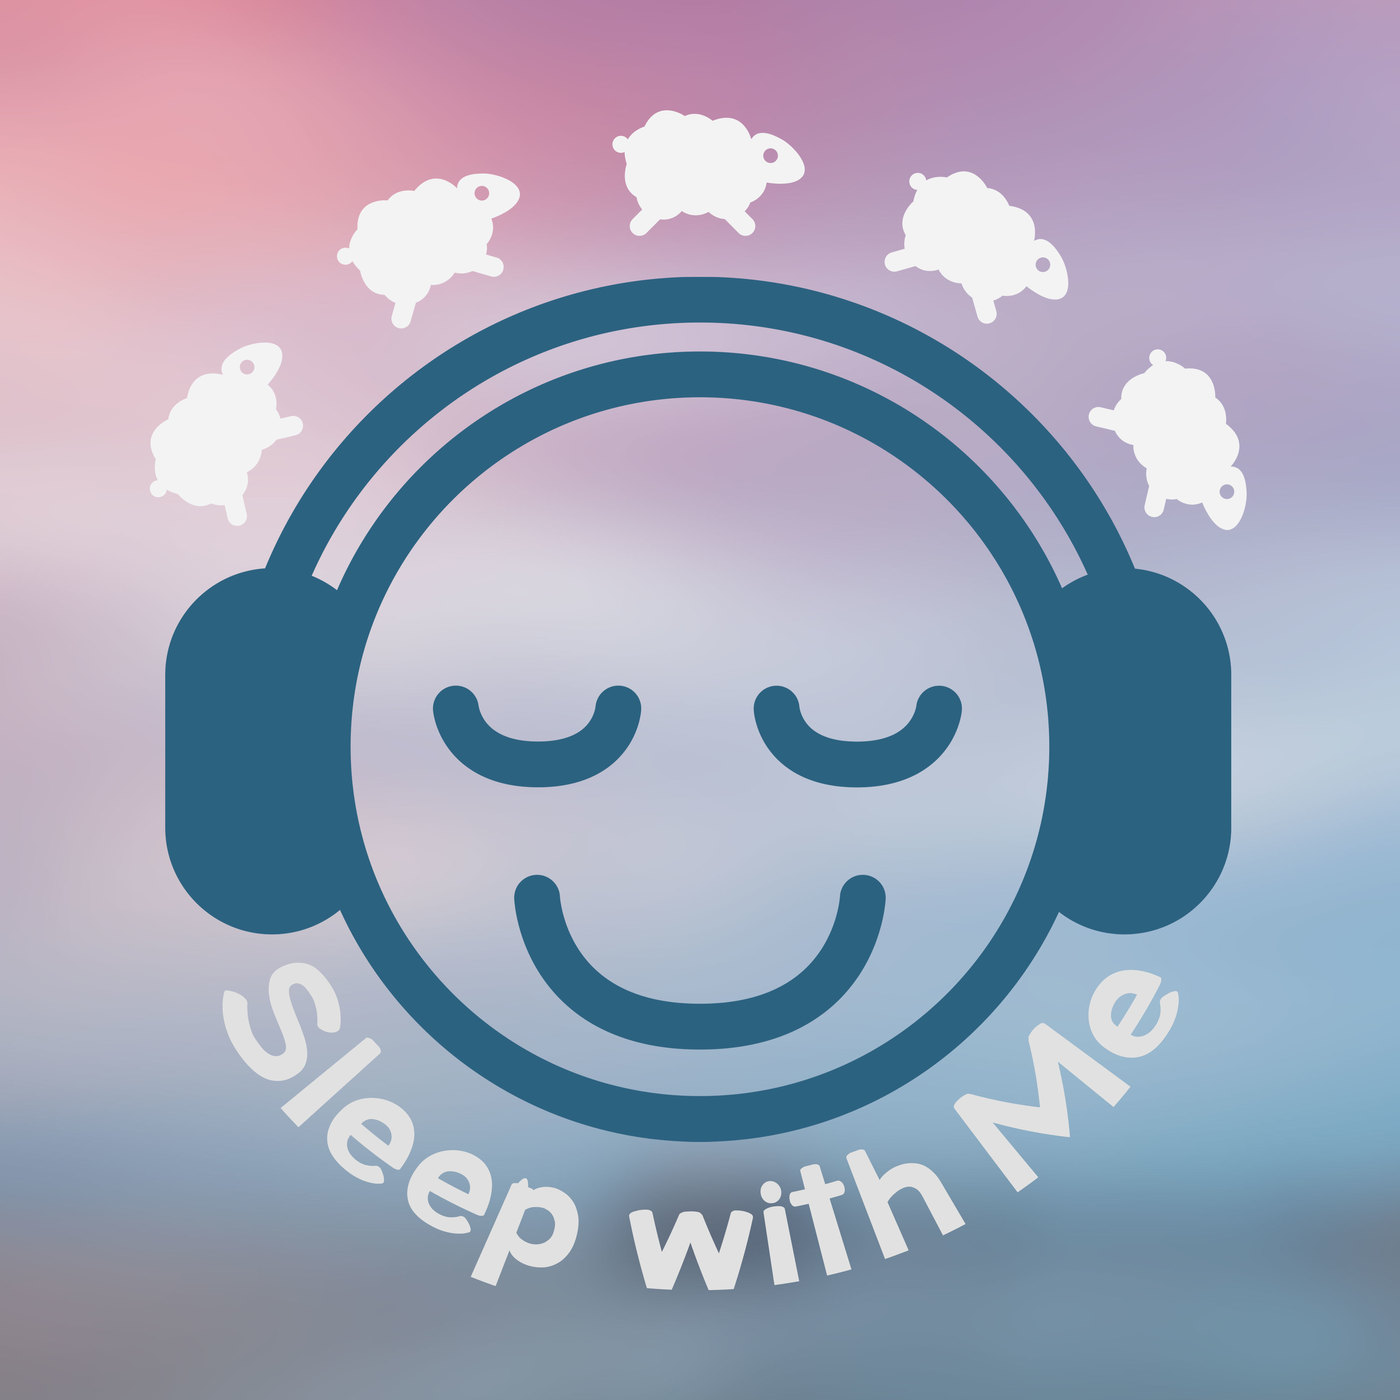 sofa king podcast patreon billie 2 piece storage bed with chaise review sleep me by night vale presents on apple podcasts